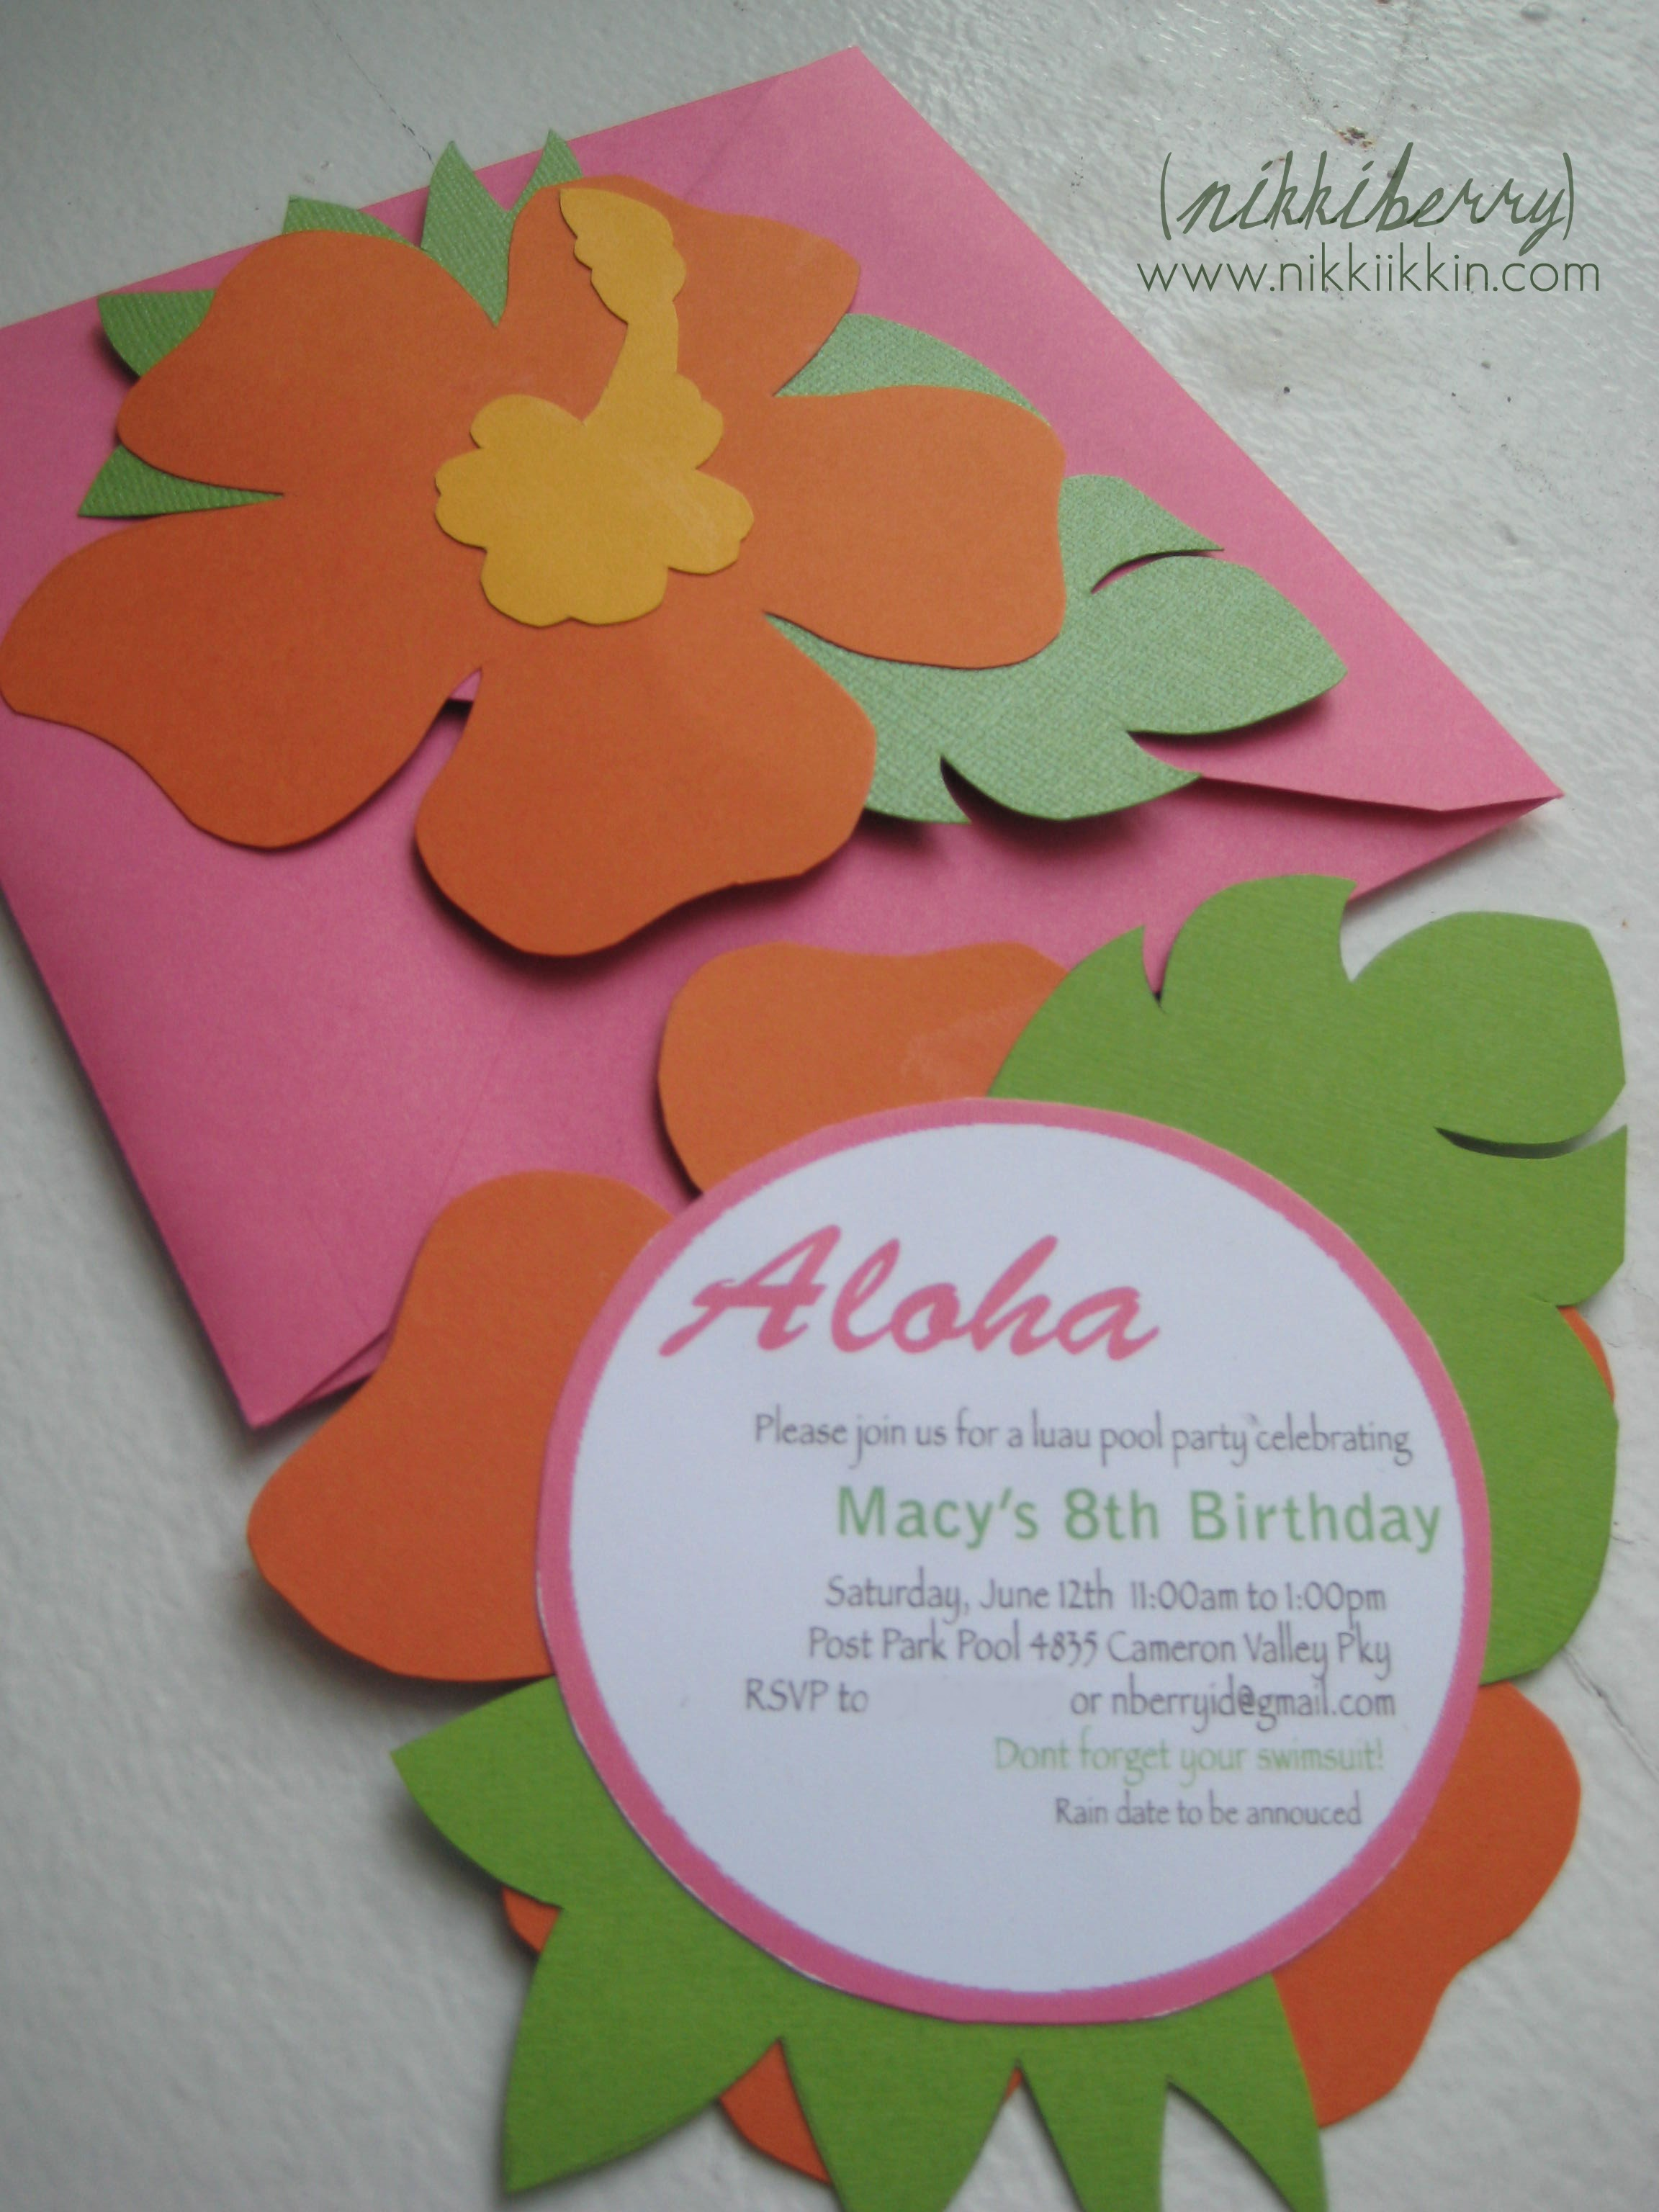 Hawaiian Themed Invitations with best invitations template